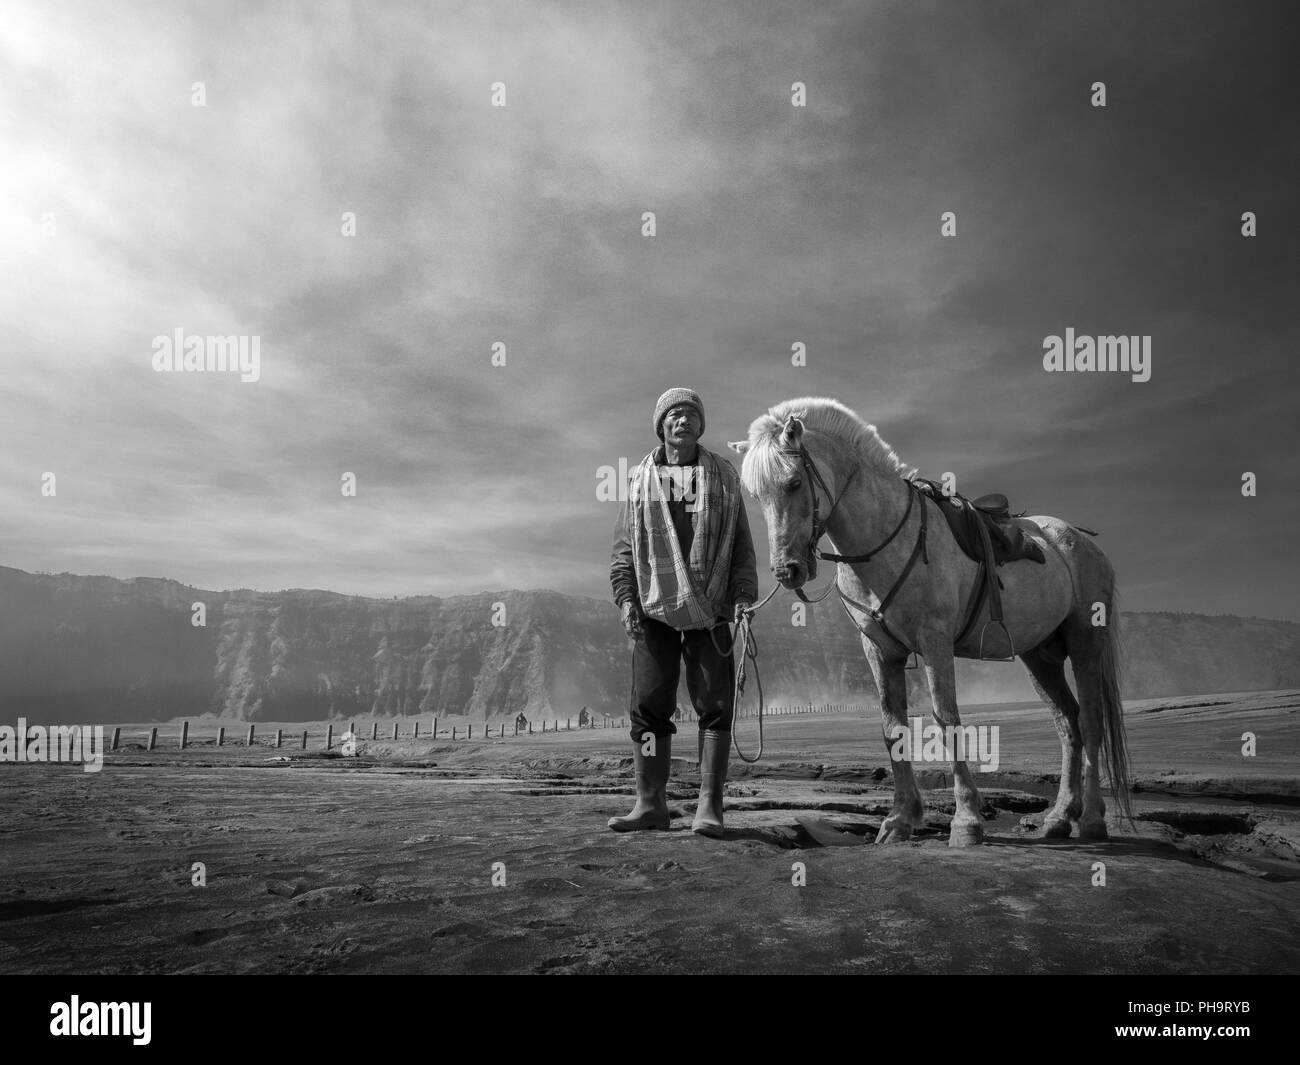 A horse rider in mount Bromo - Stock Image